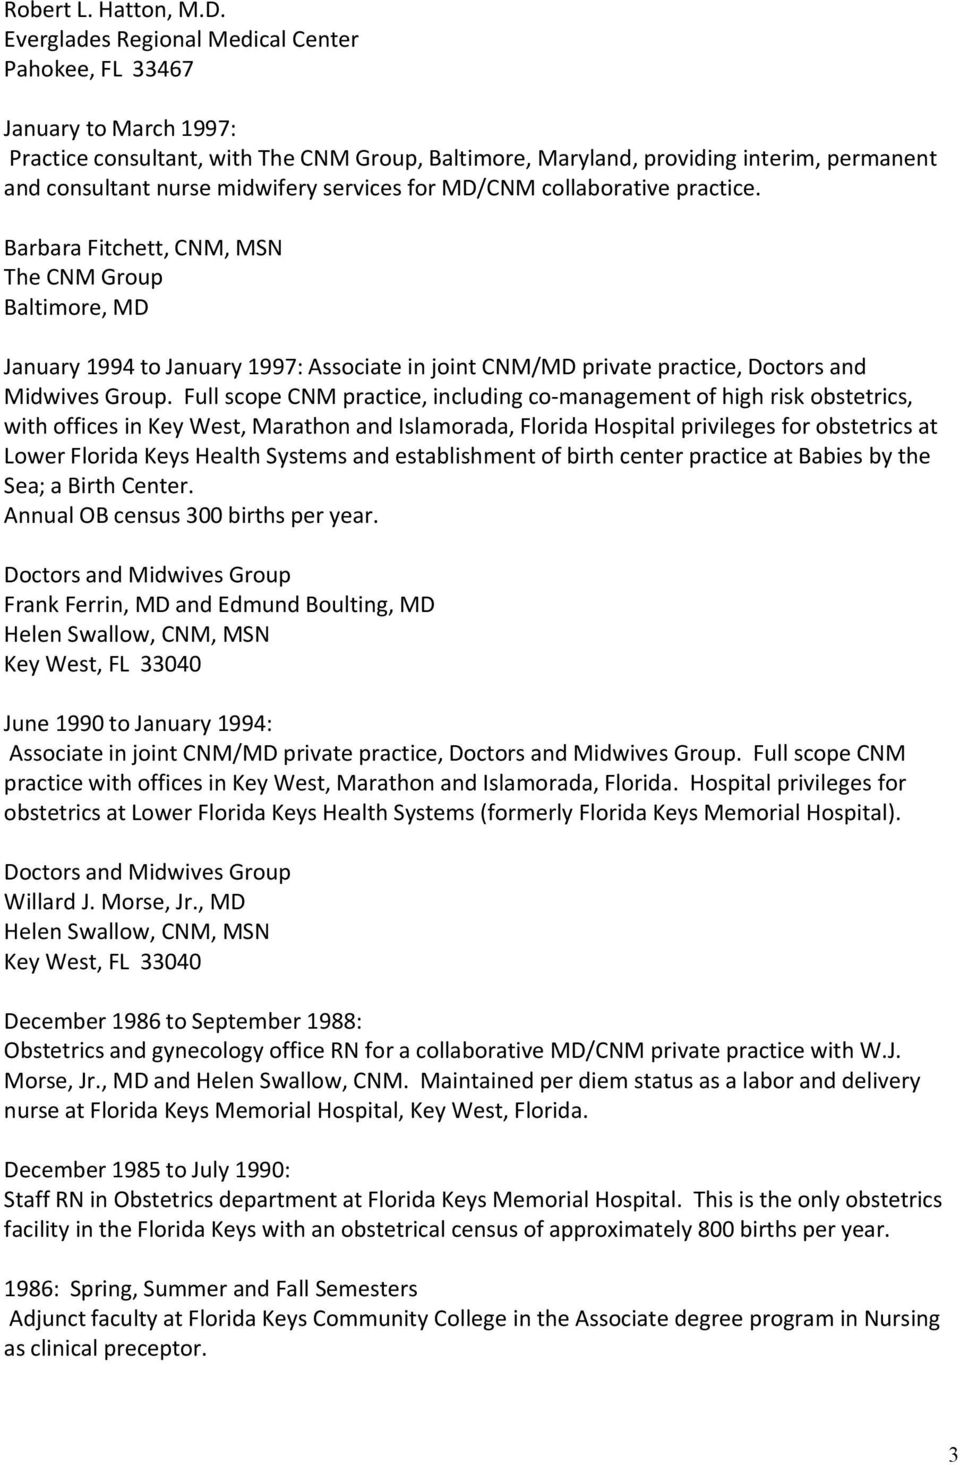 services for MD/CNM collaborative practice. Barbara Fitchett, CNM, MSN The CNM Group Baltimore, MD January 1994 to January 1997: Associate in joint CNM/MD private practice, Doctors and Midwives Group.